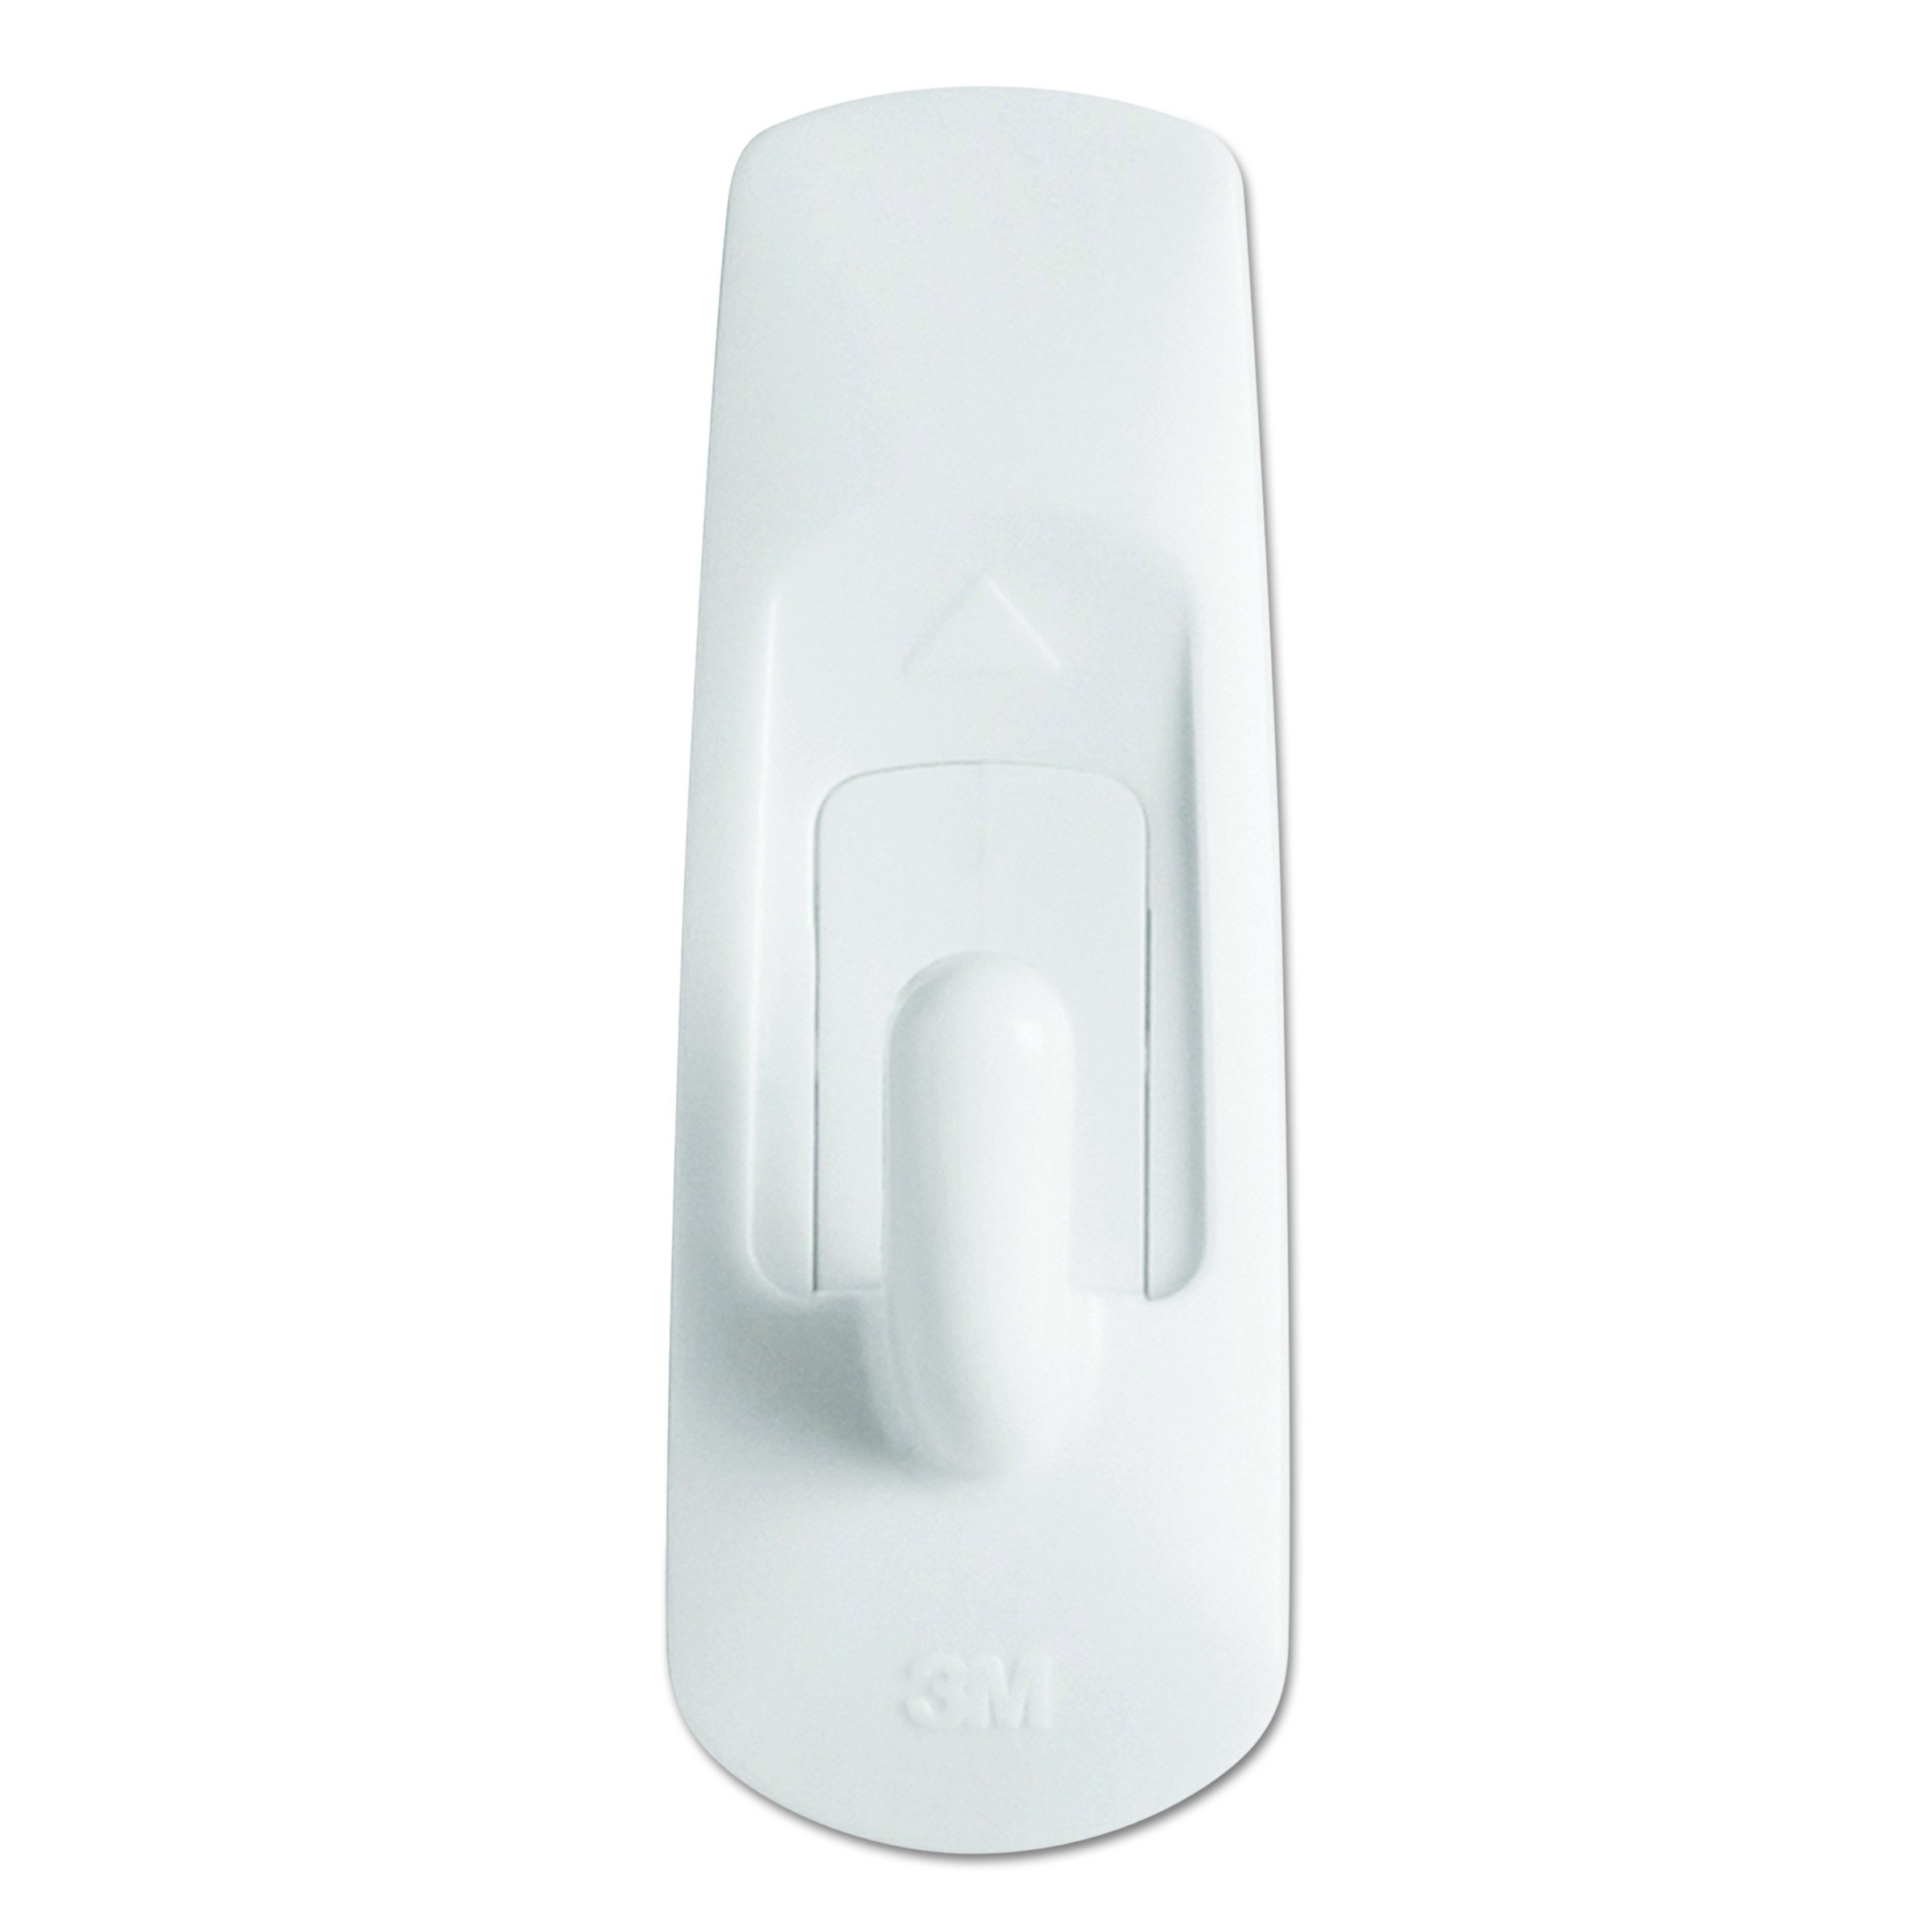 Command Small Utility Hooks Mega Pack, White, 24-Hooks (17002-MPES) by Command (Image #2)